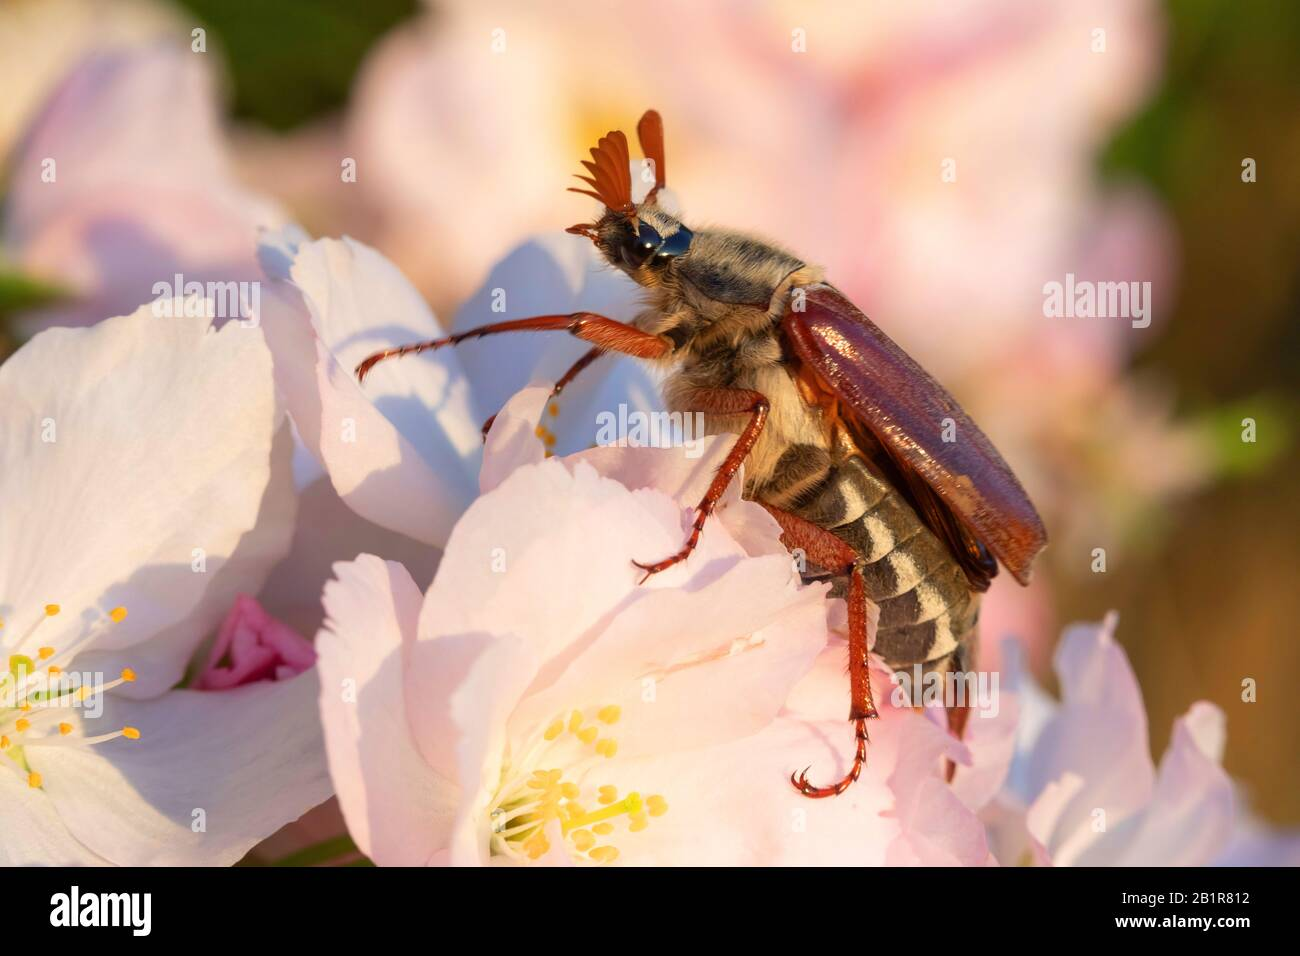 Common cockchafer, Maybug, Maybeetle (Melolontha melolontha), male sitting on a blossom, side view, Germany Stock Photo